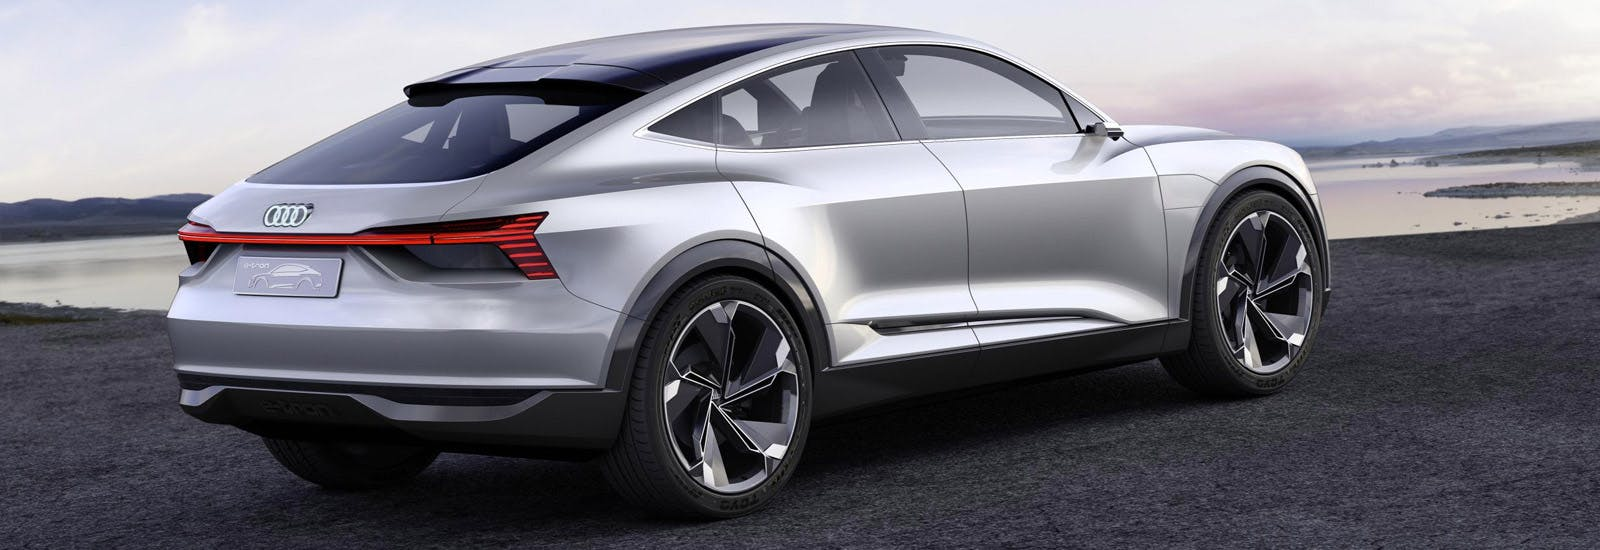 2019 audi e tron sportback price specs and release date carwow. Black Bedroom Furniture Sets. Home Design Ideas